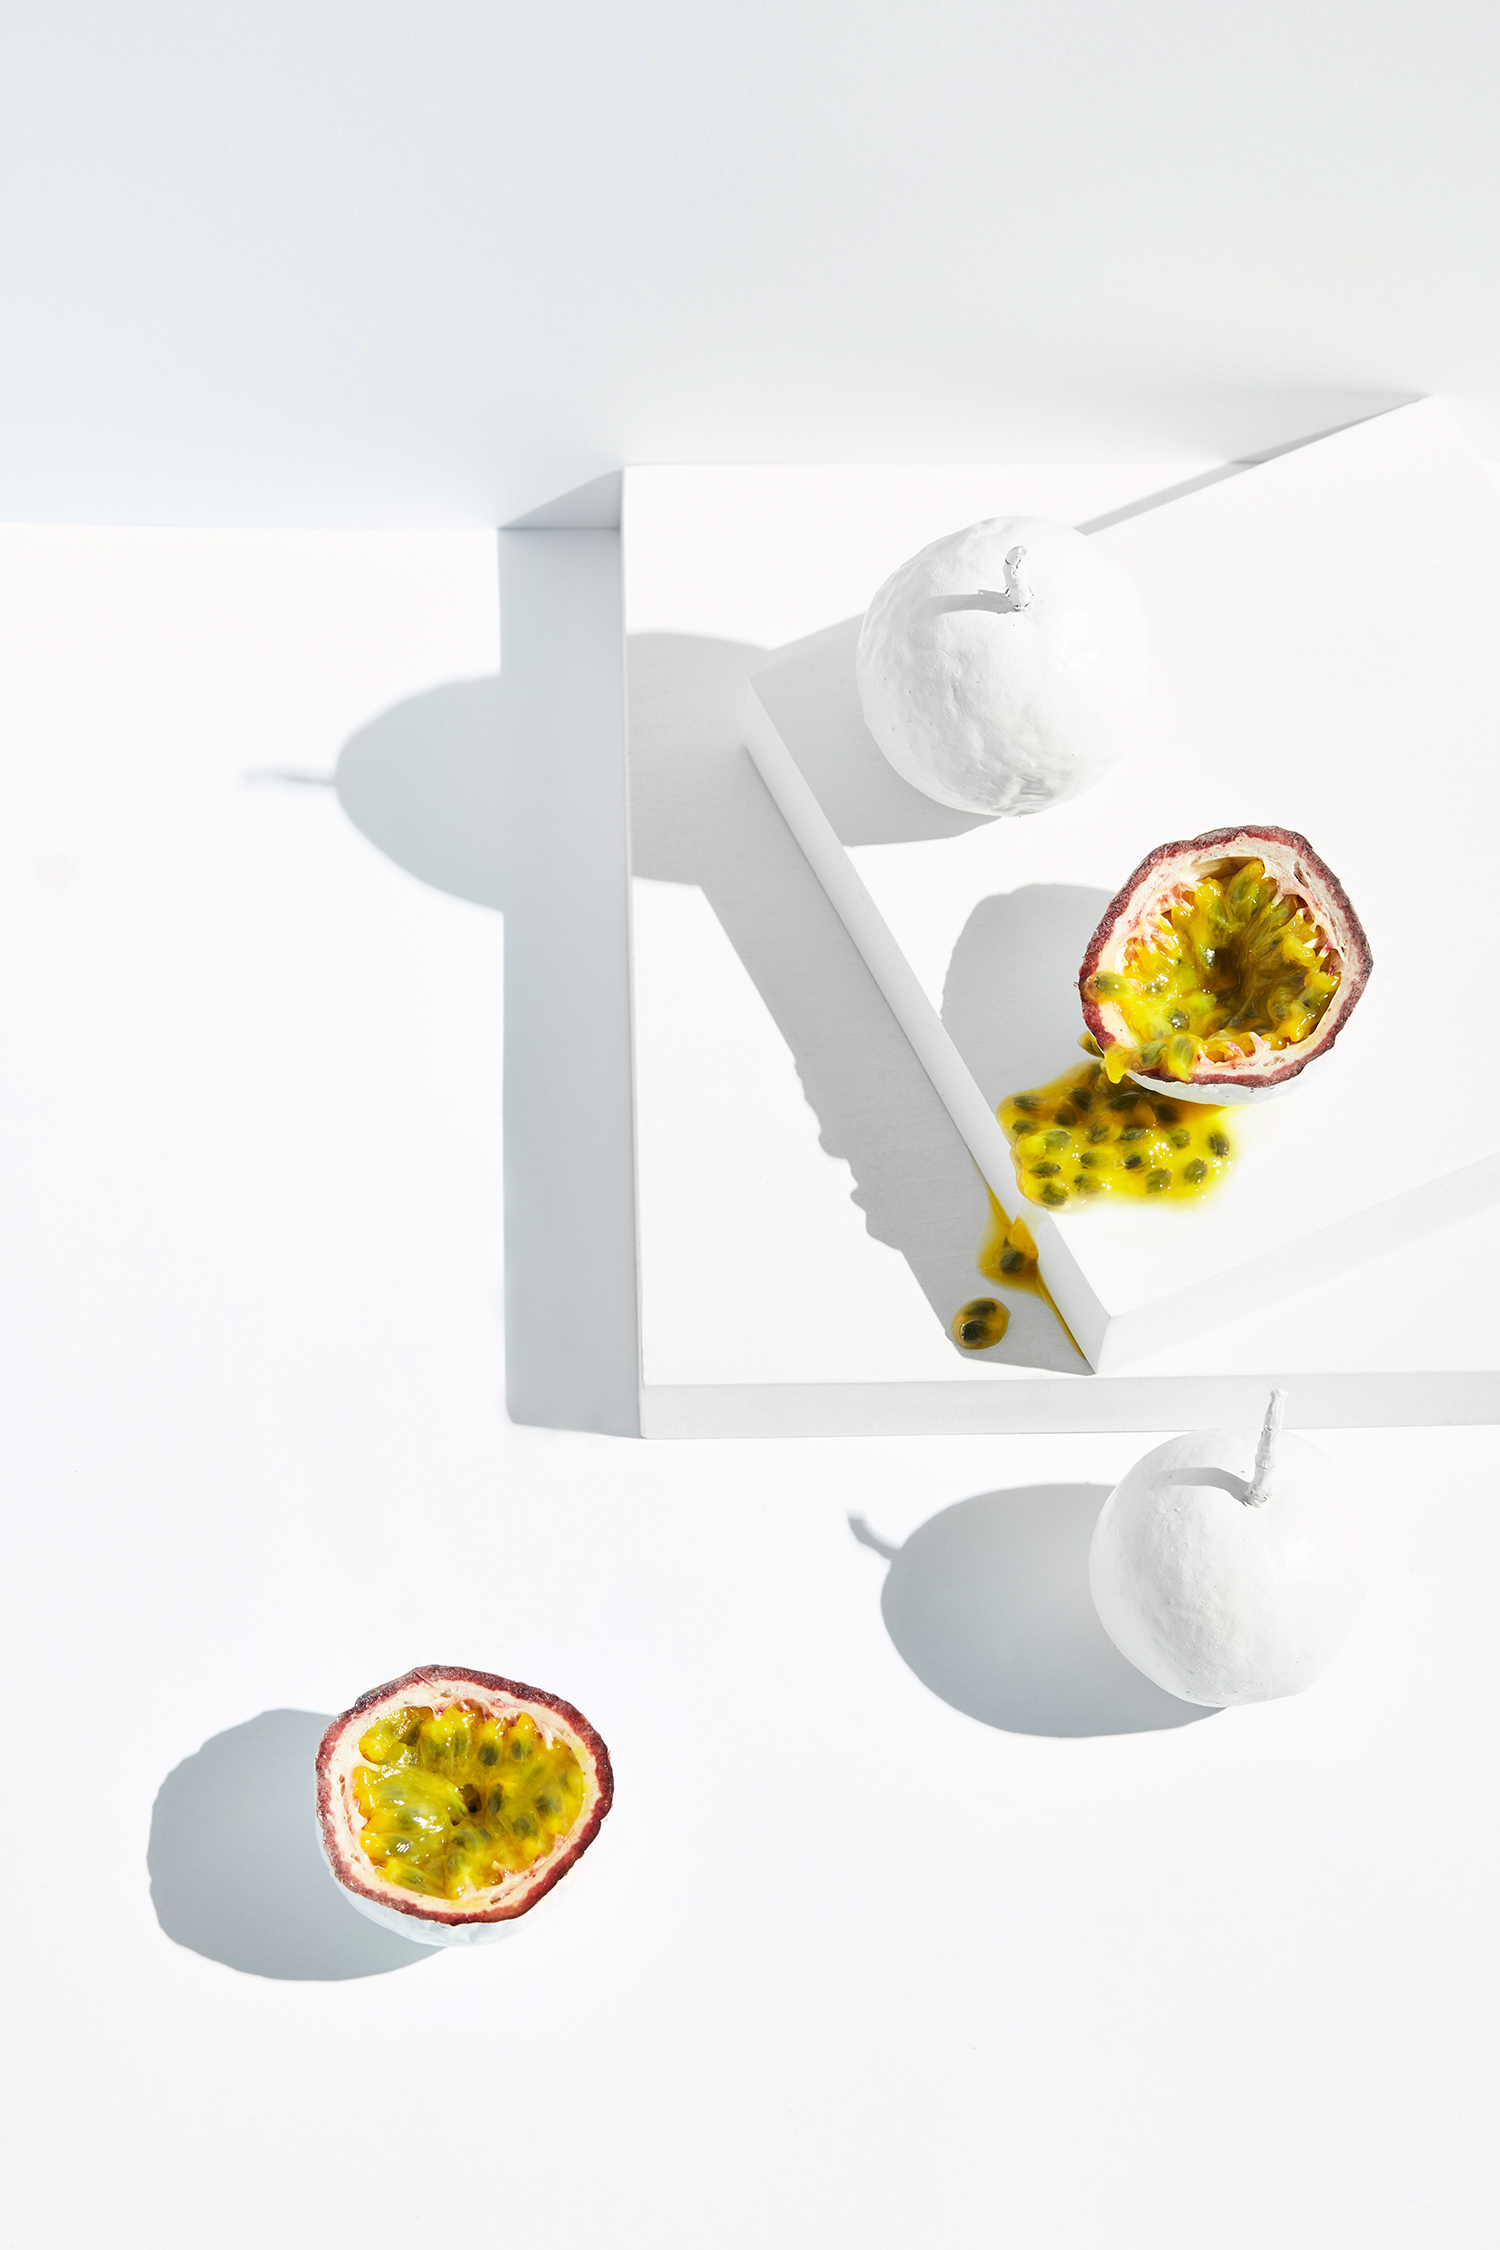 PASSIONFRUIT shot by Sydney advertising, Interior, food and lifestyle photographer Benito Martin